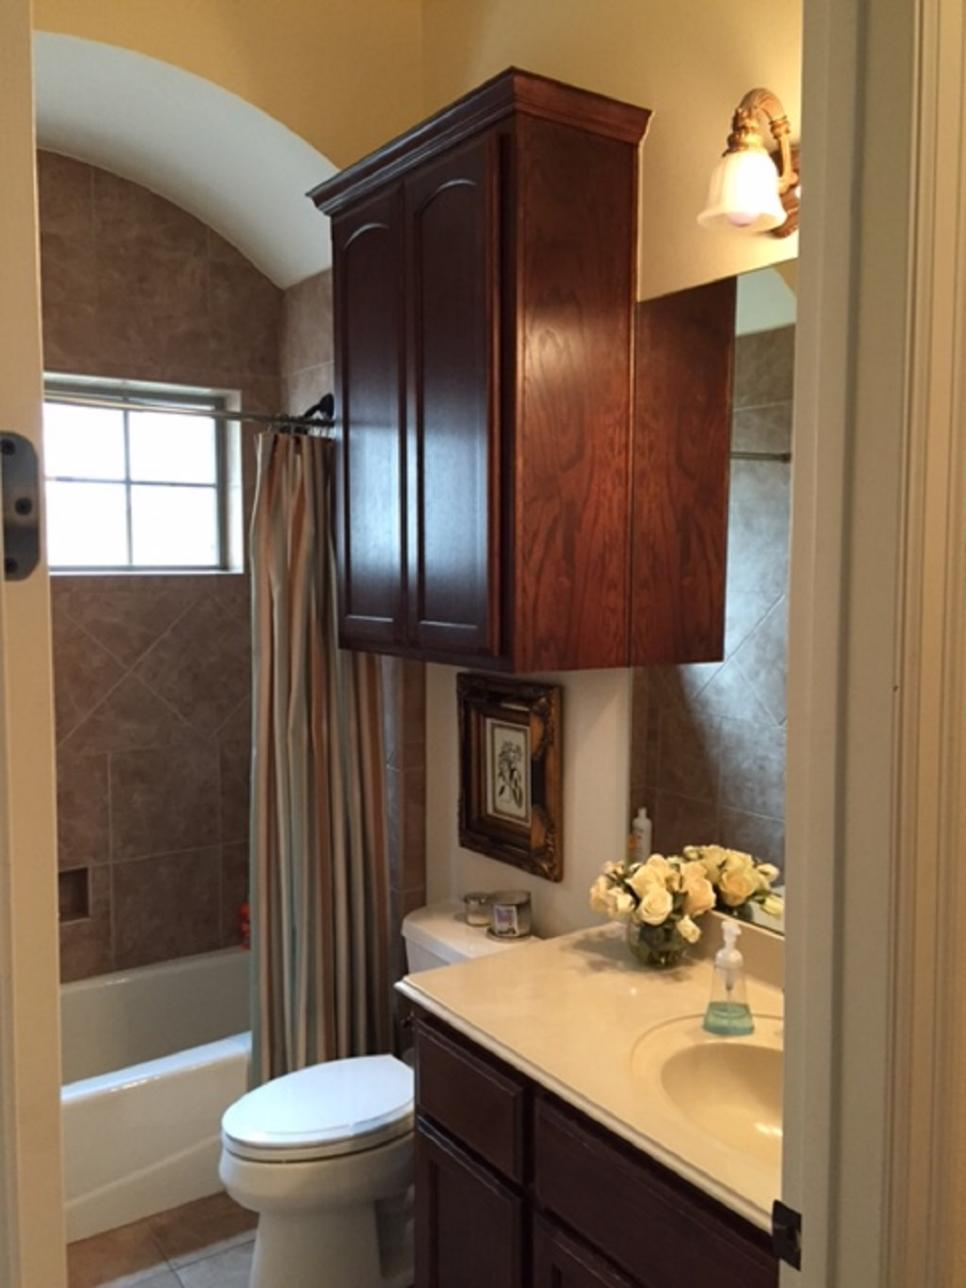 Before and after bathroom remodels on a budget hgtv for Average cost for small bathroom remodel